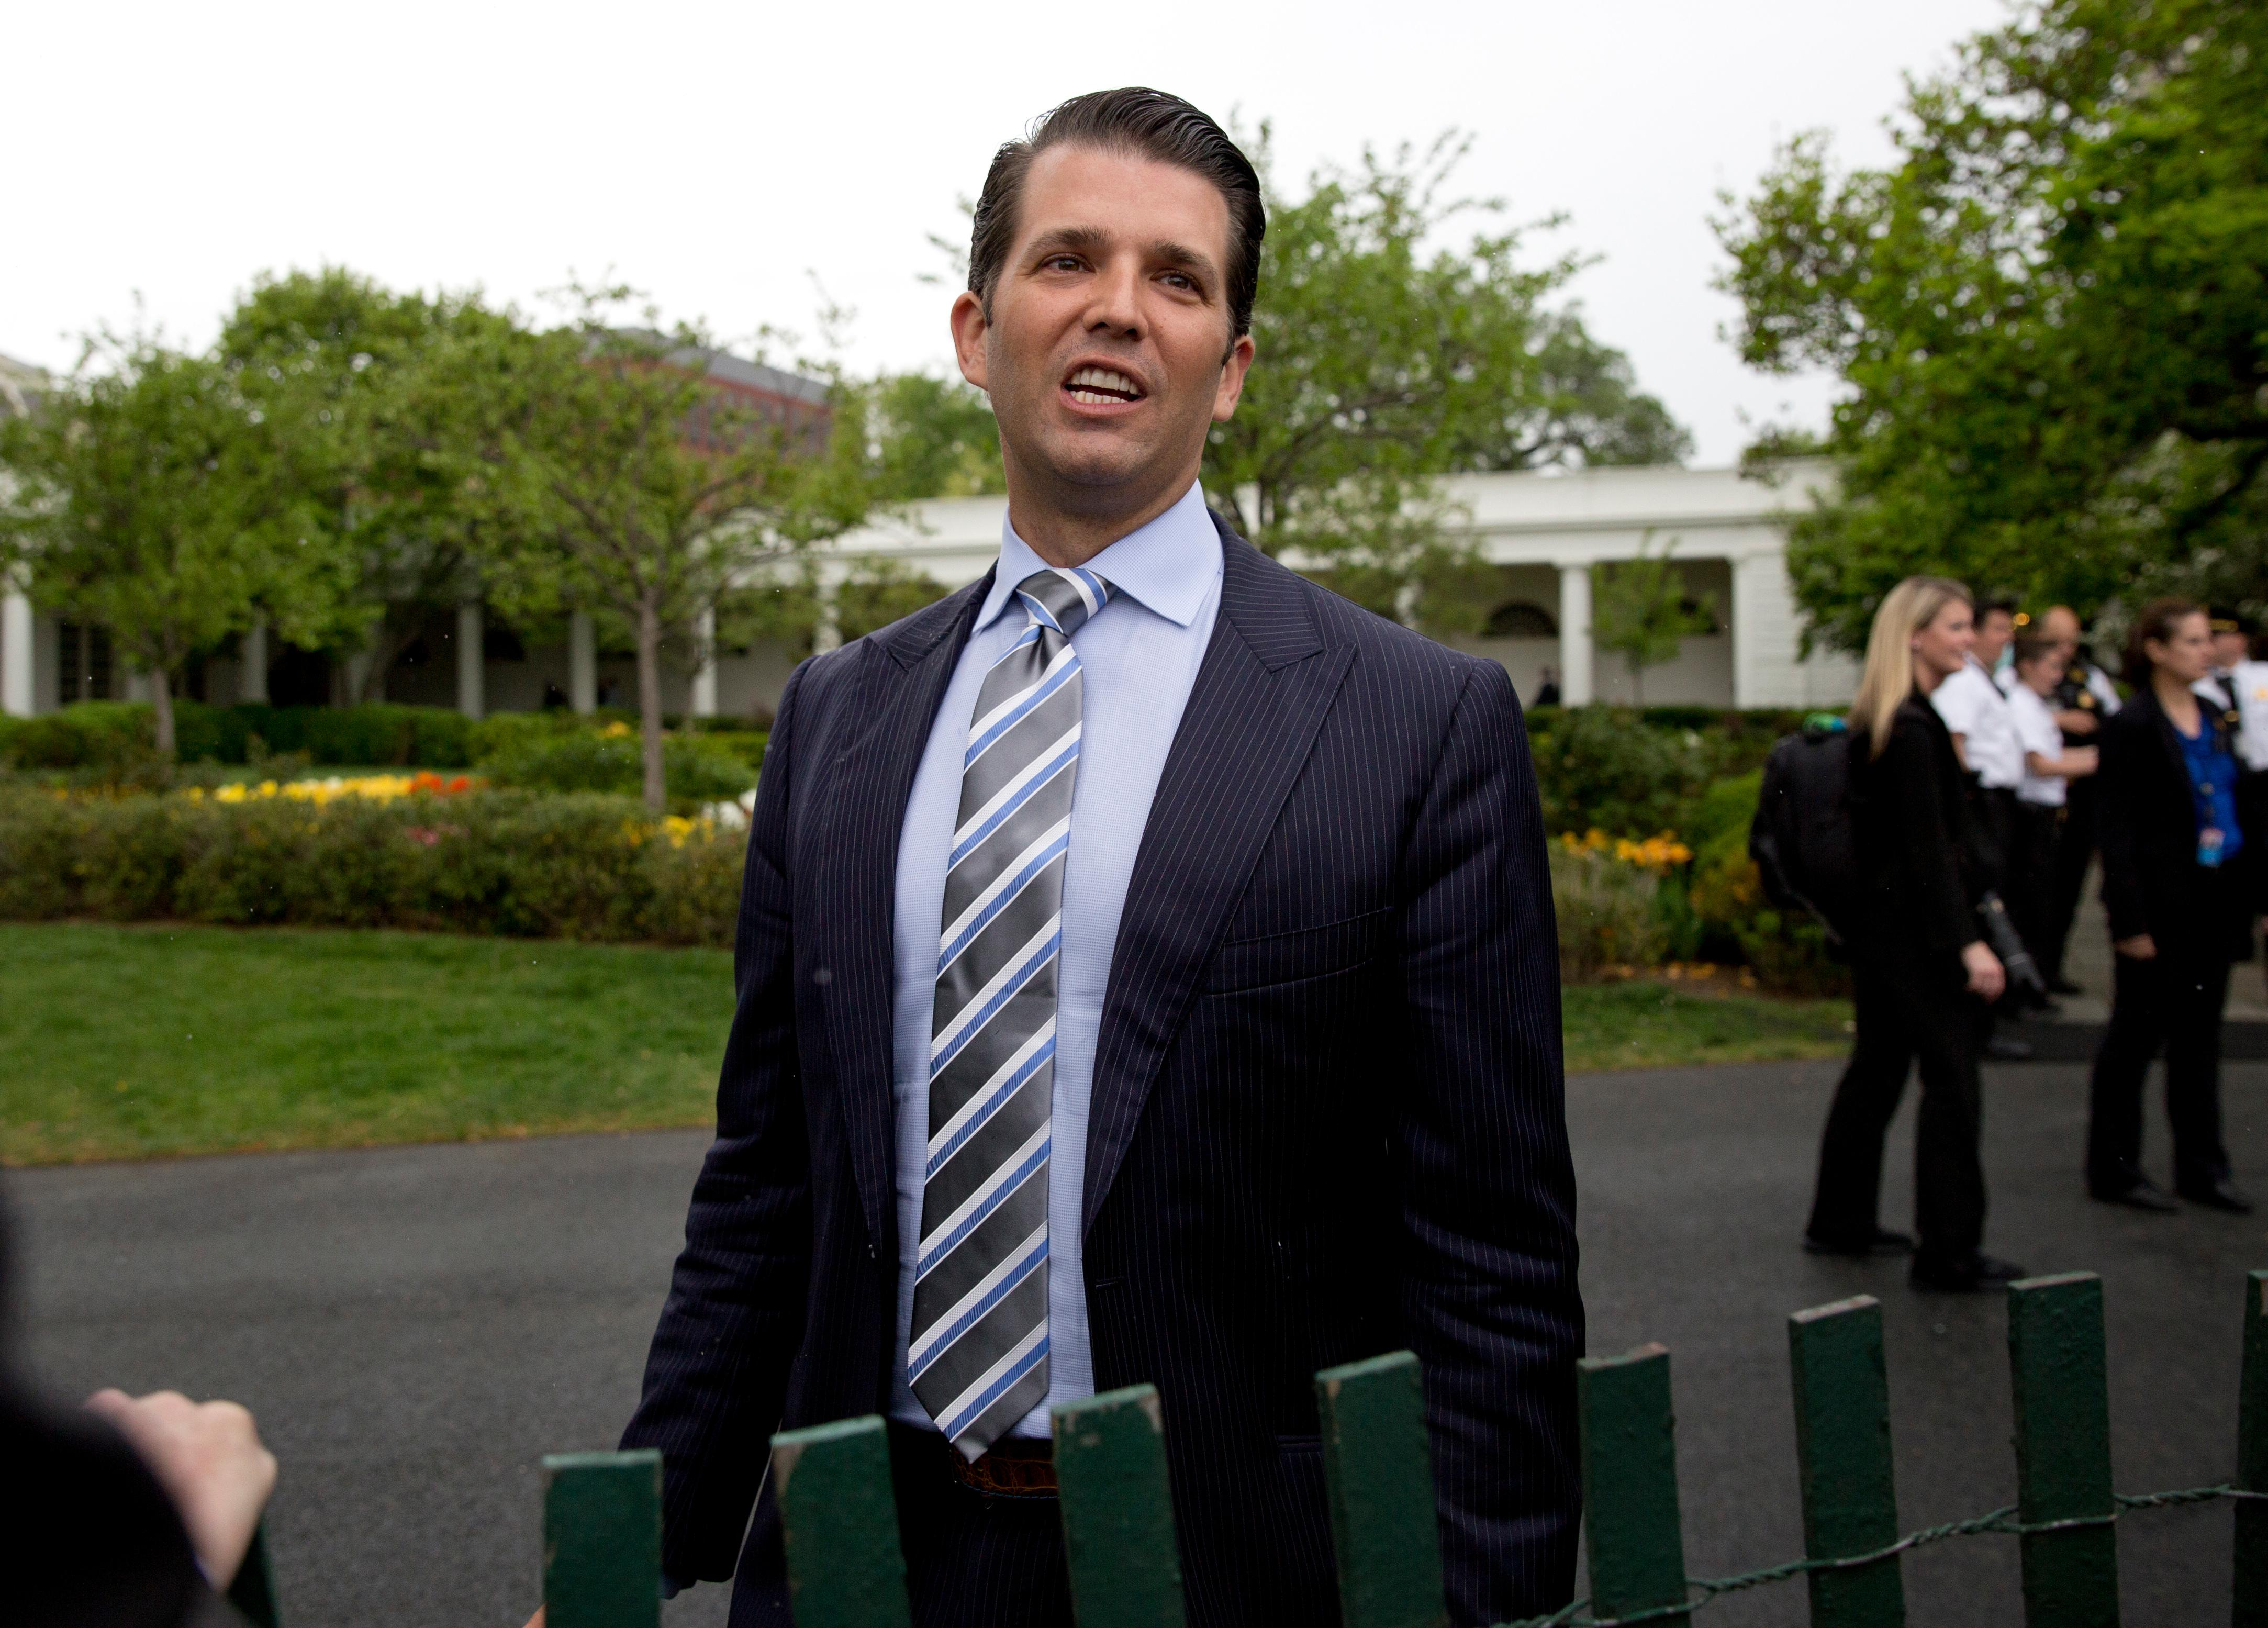 FILE - In this April 17, 2017, file photo, Donald Trump Jr., the son of President Donald Trump, speaks to media during the annual White House Easter Egg Roll on the South Lawn of the White House in Washington. At the heart of Donald Trump Jr.'s unusual campaign-season meeting with a Russian lawyer was an obscure sanctions law that has infuriated the Kremlin.  The Magnitsky Act, passed by Congress in 2012, was a U.S. response to the dubious death of a different Russian lawyer named Sergei Magnitsky. (AP Photo/Carolyn Kaster, File)